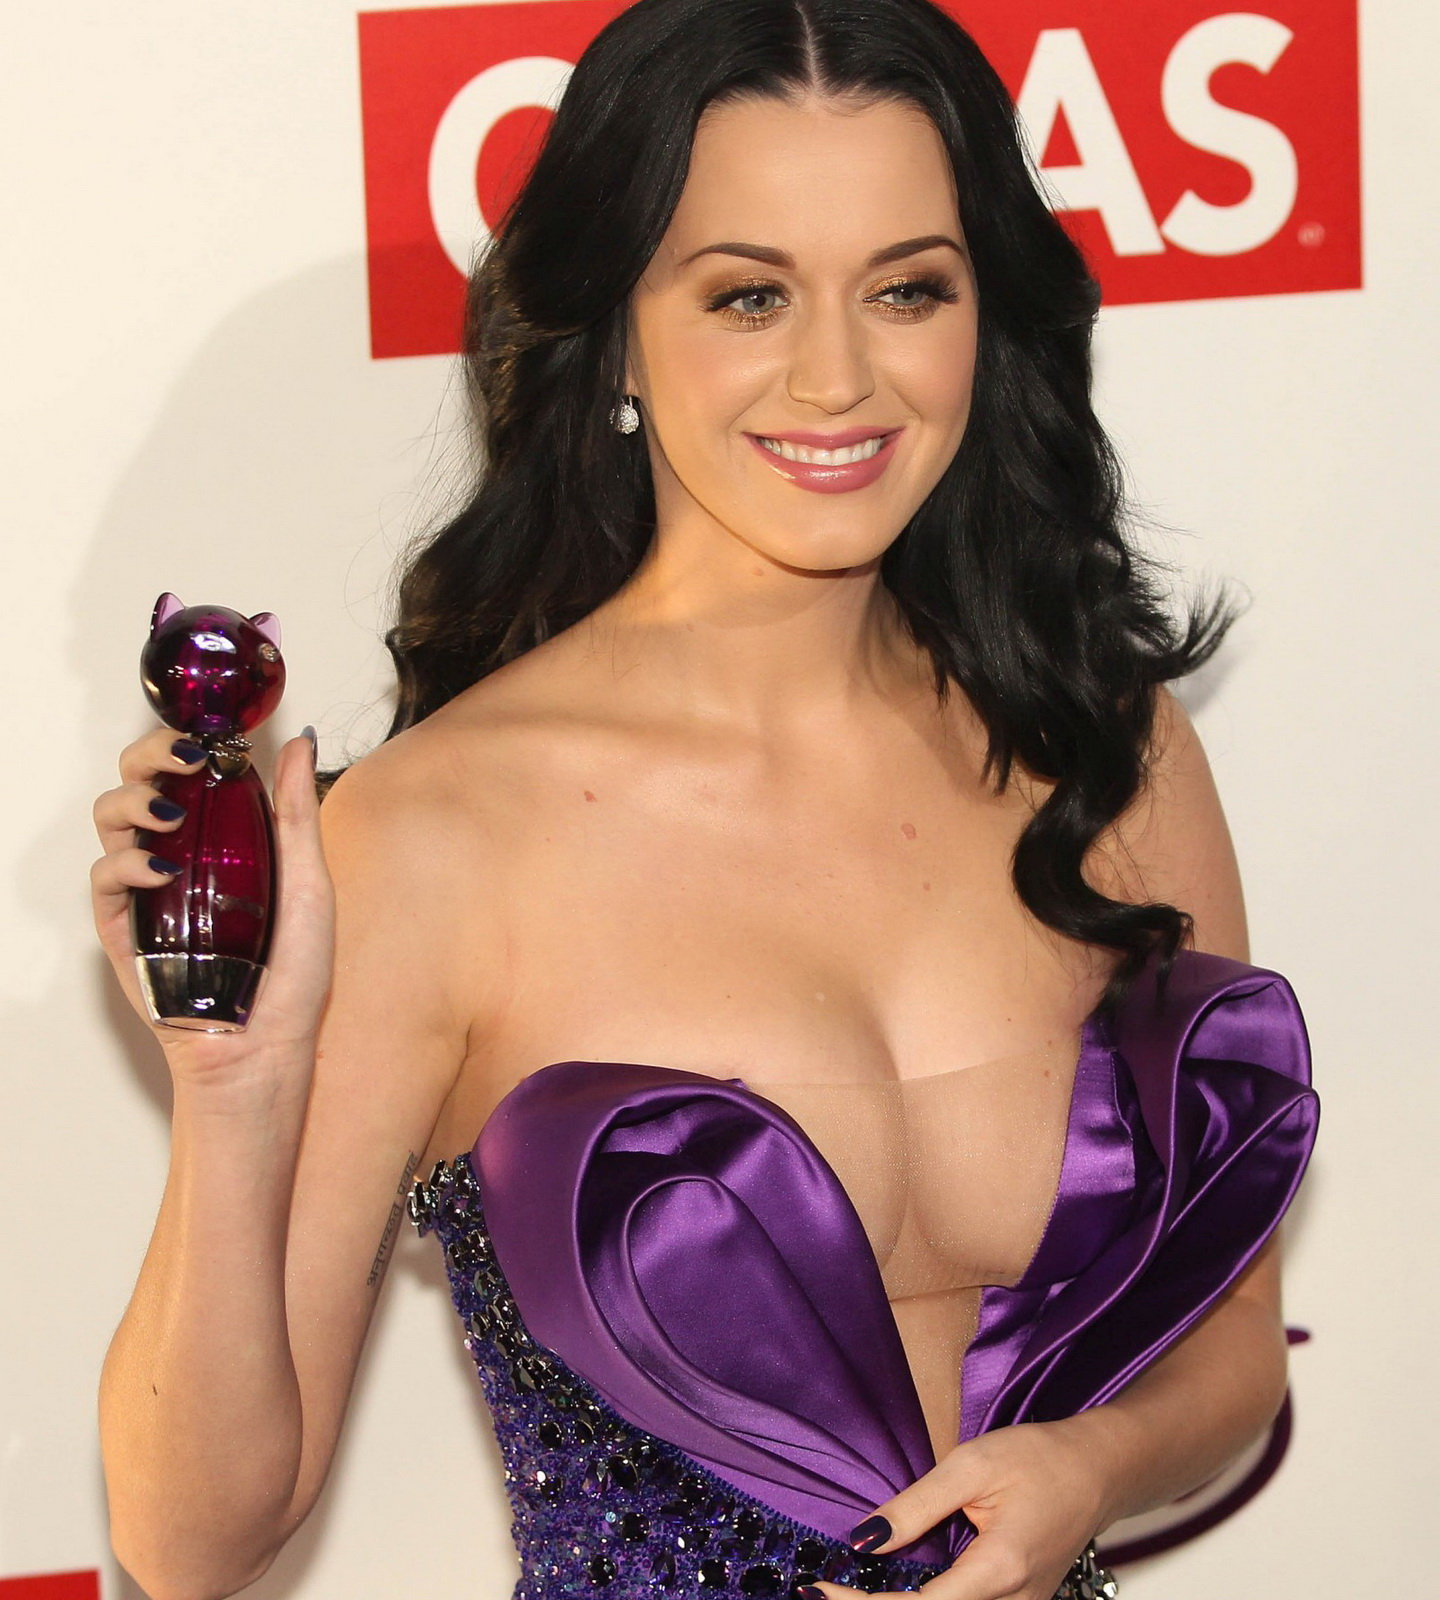 CONG COK Katy Perry Cleavage Areola Slip